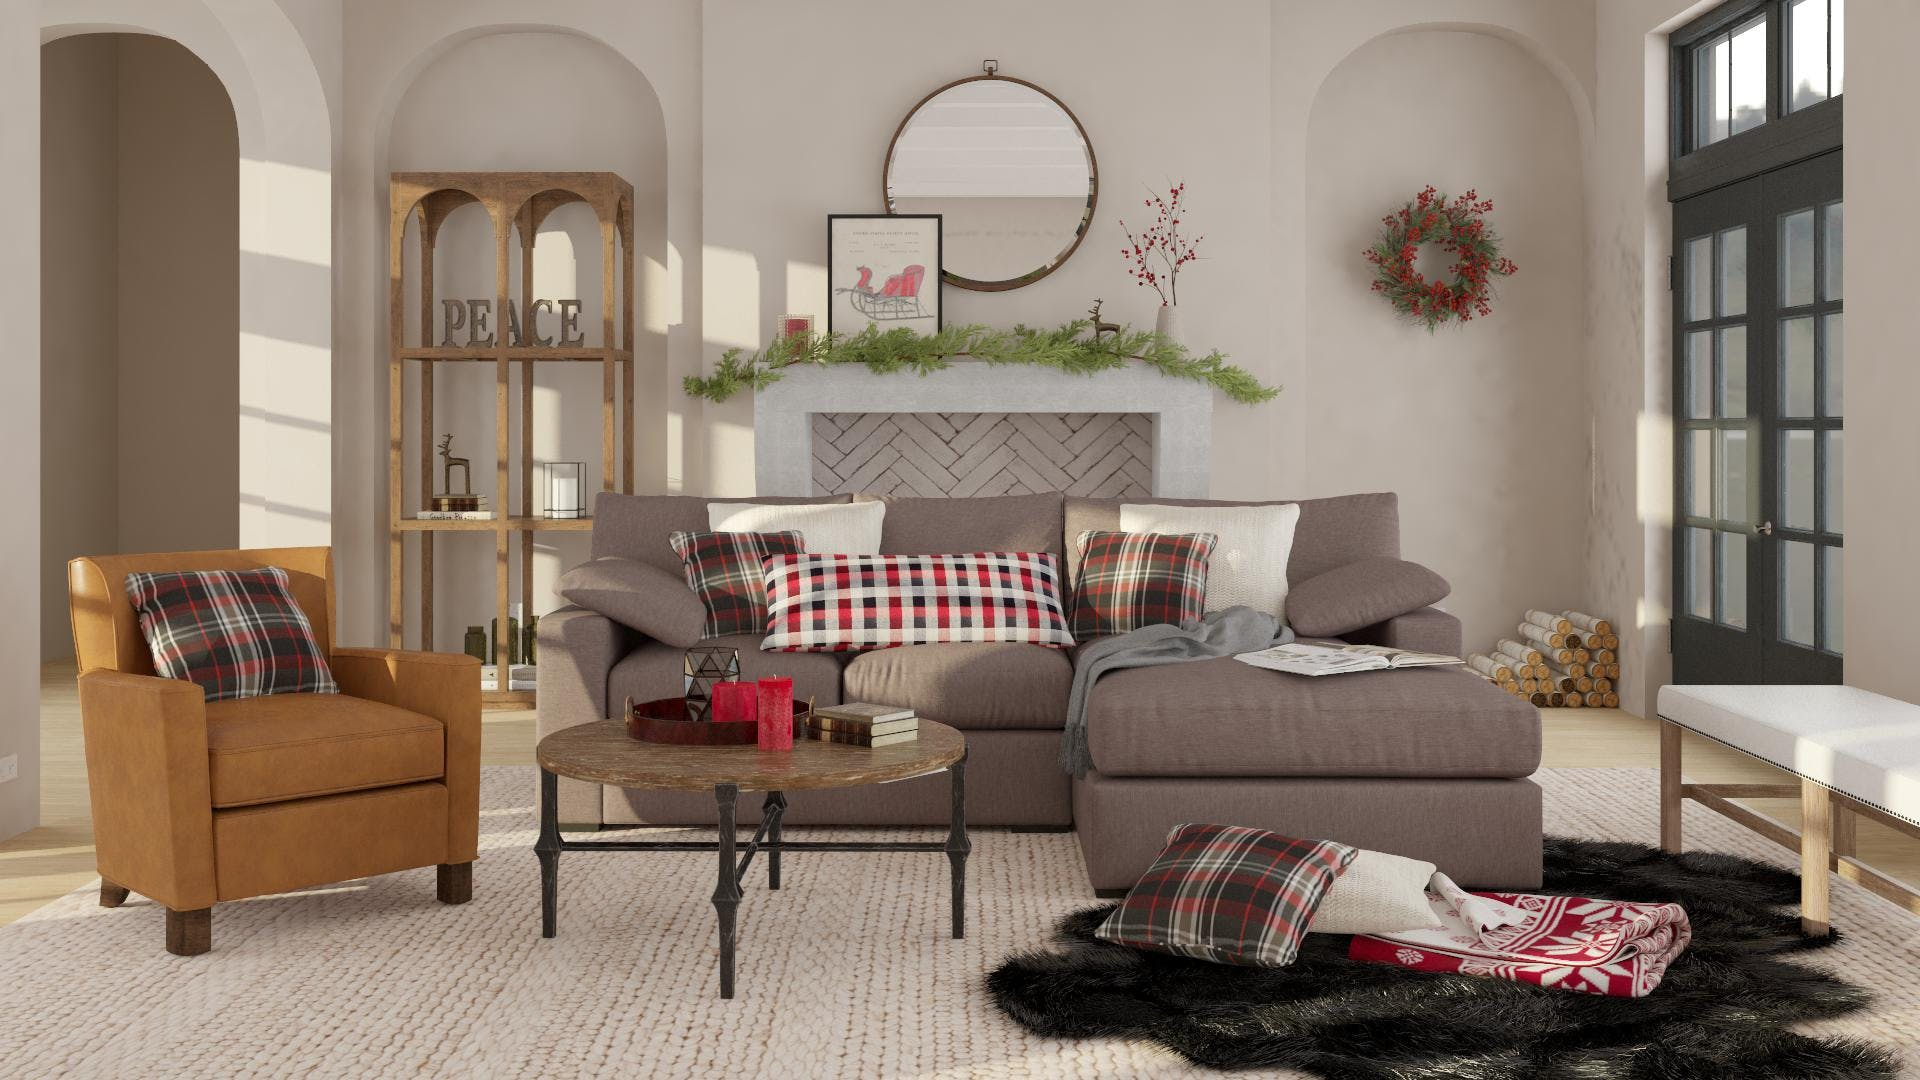 A Traditional and Warm Holiday Living Room